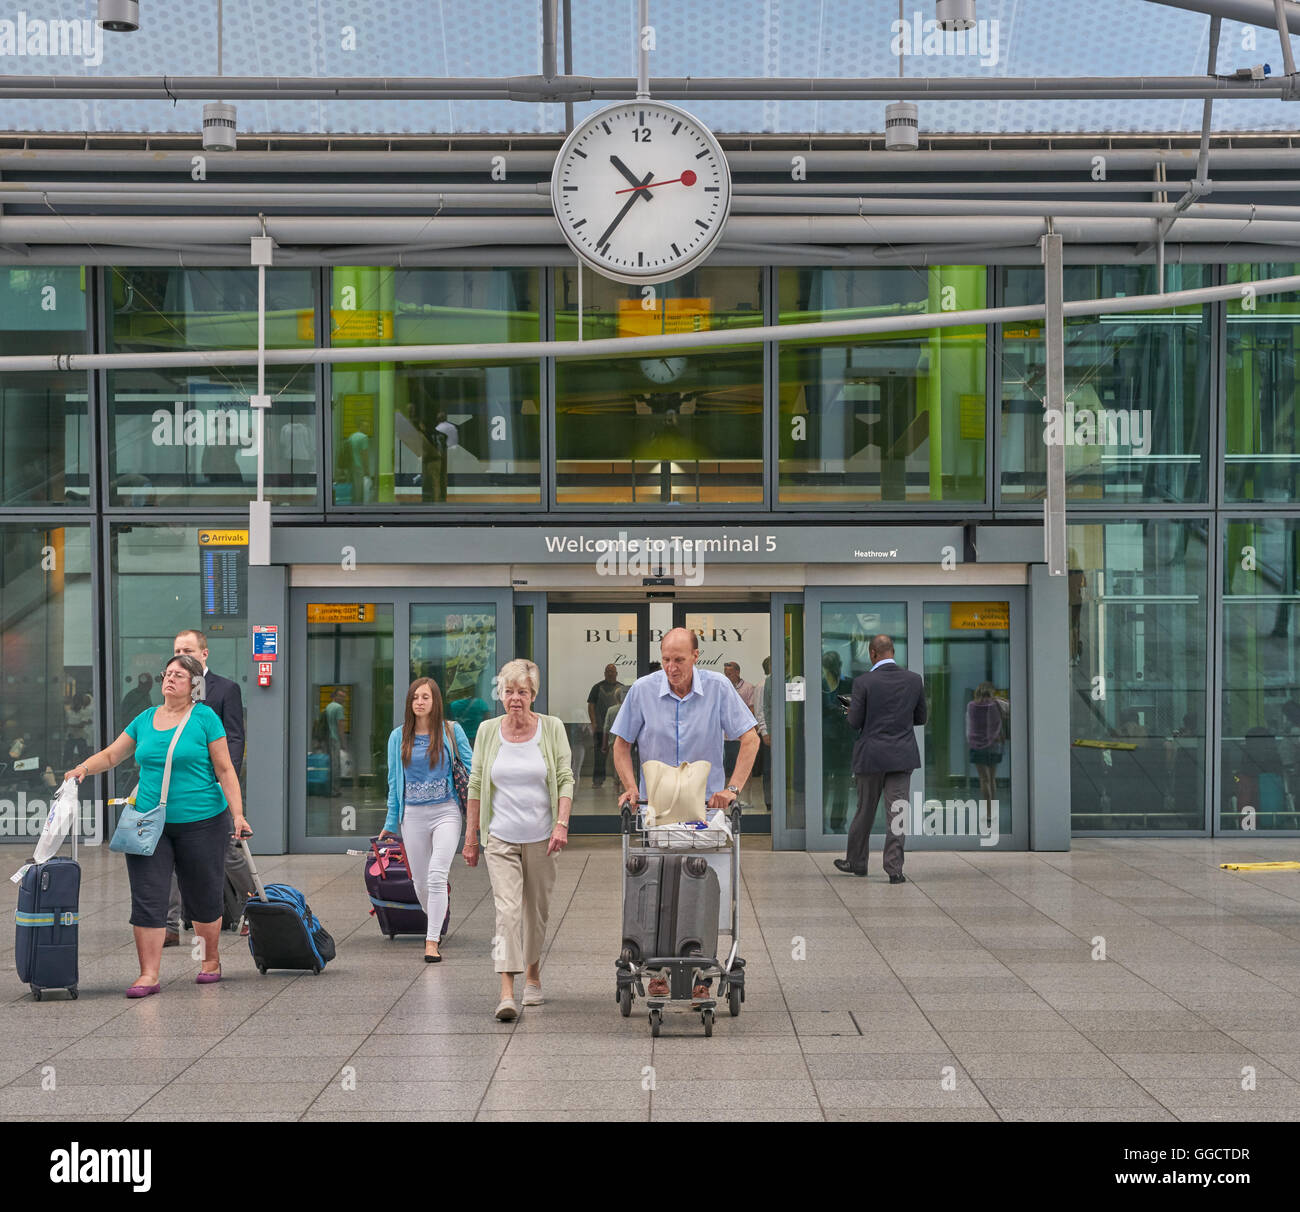 terminal 5 heathrow airport  passengers leaving terminal - Stock Image